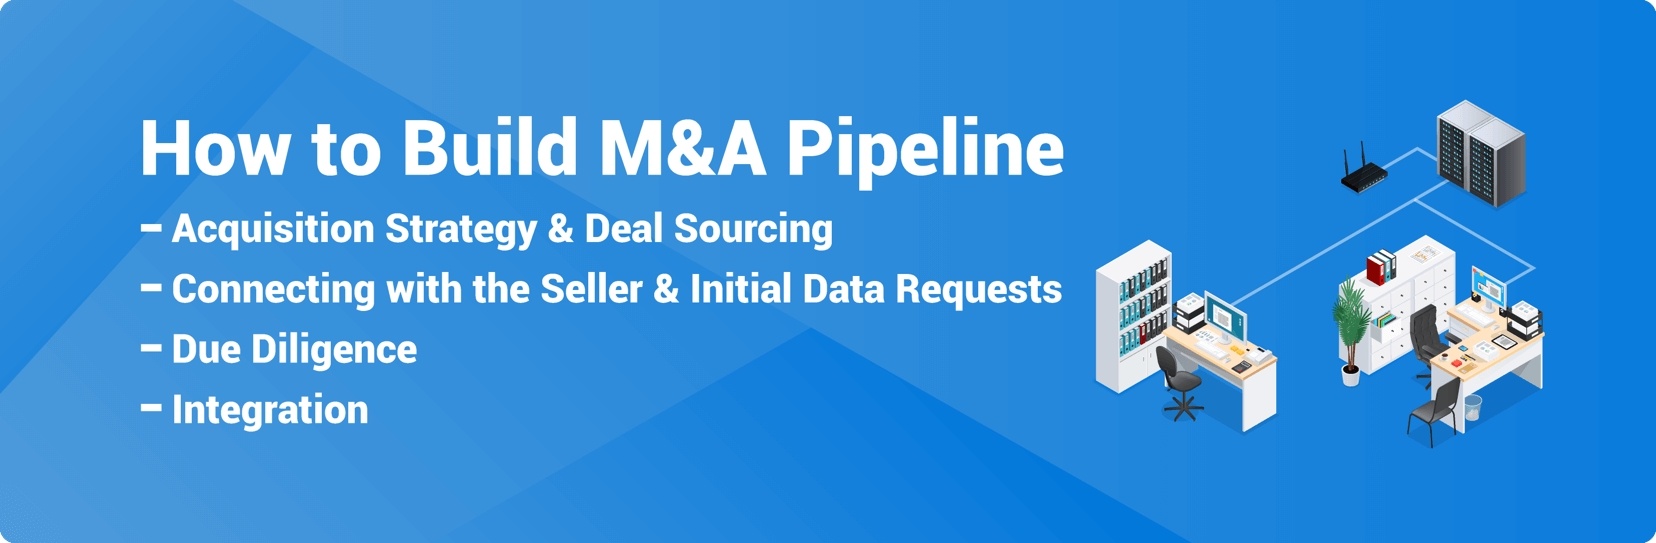 How to Build M&A Pipeline